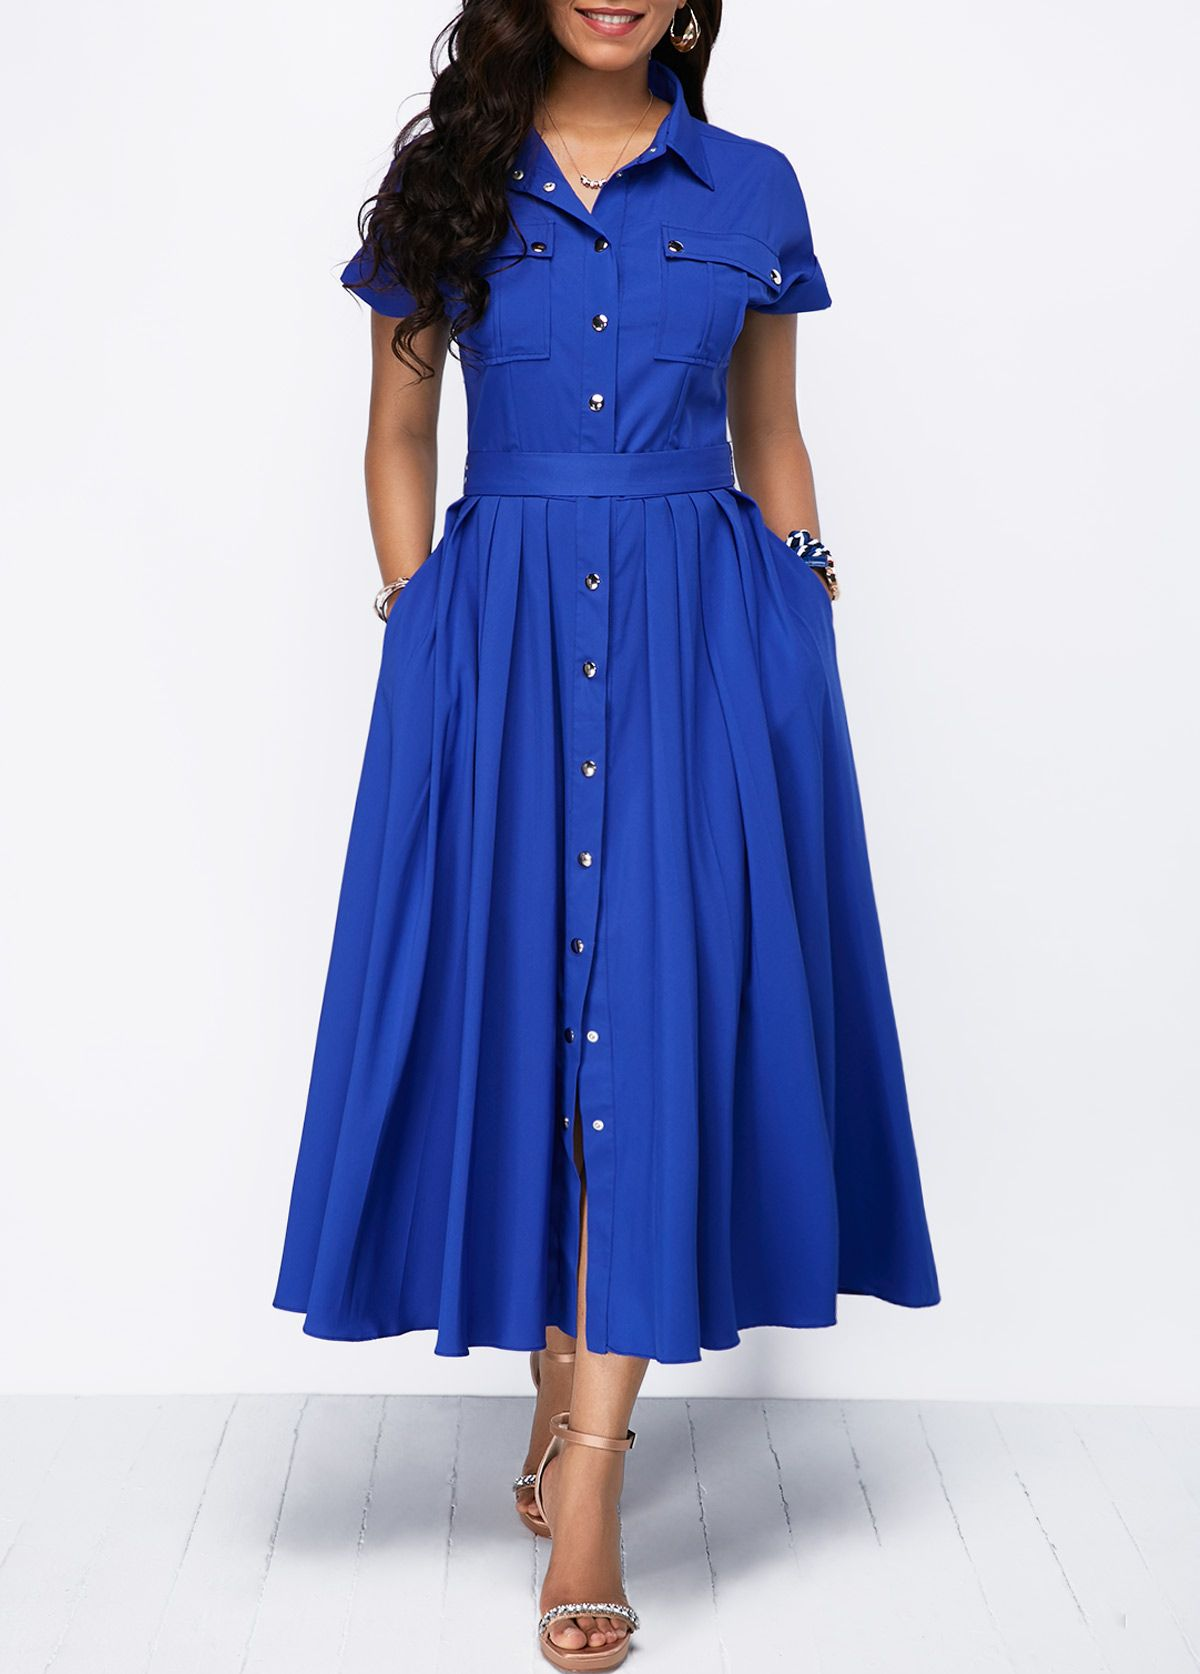 cd5b7f03788 Bowknot Back Pleated Royal Blue Button Front Dress